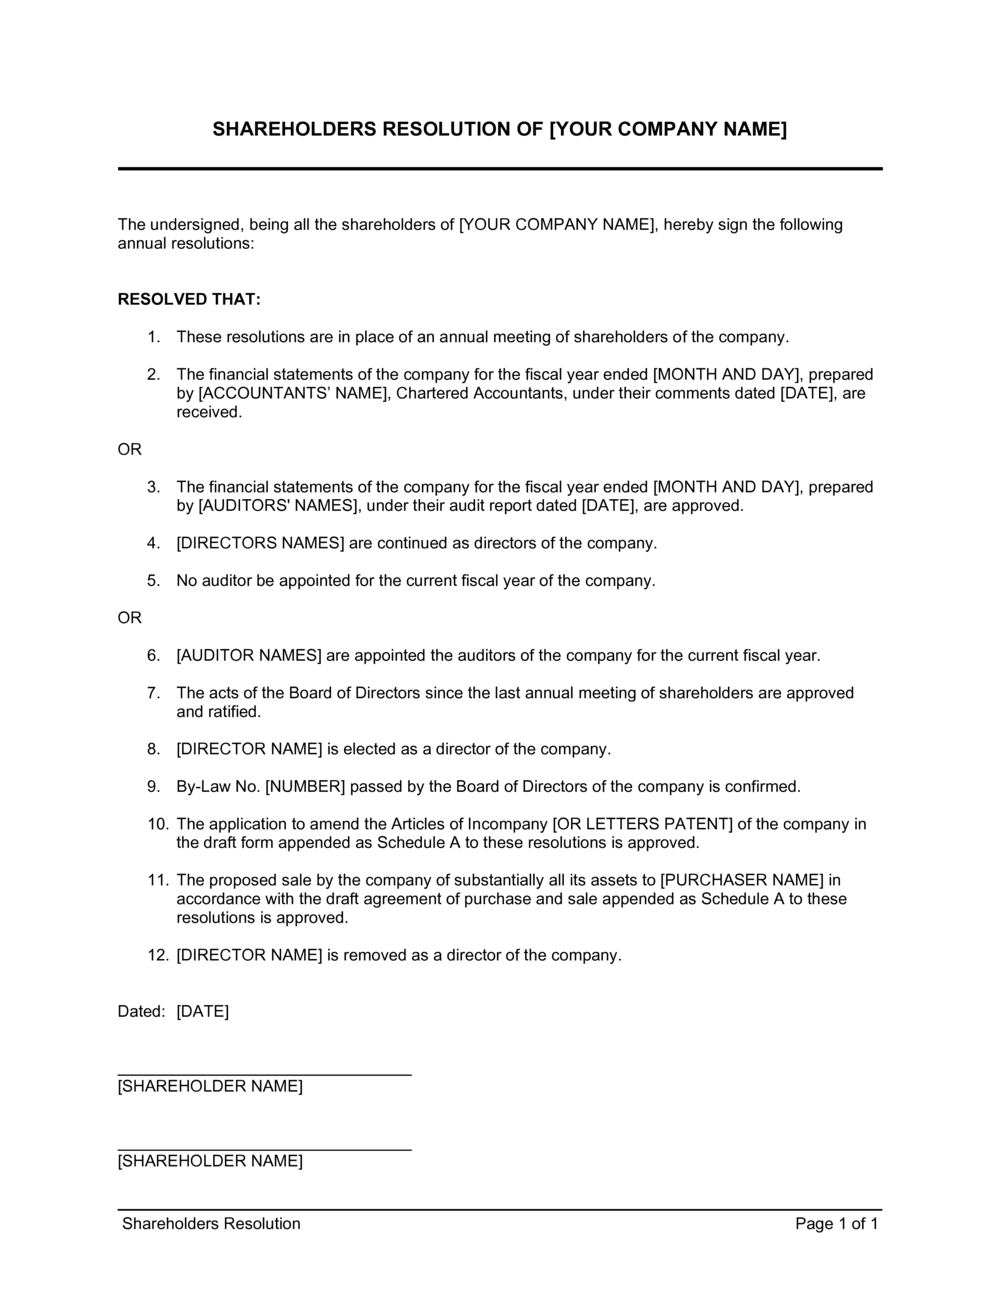 Business-in-a-Box's Shareholders Resolution Template